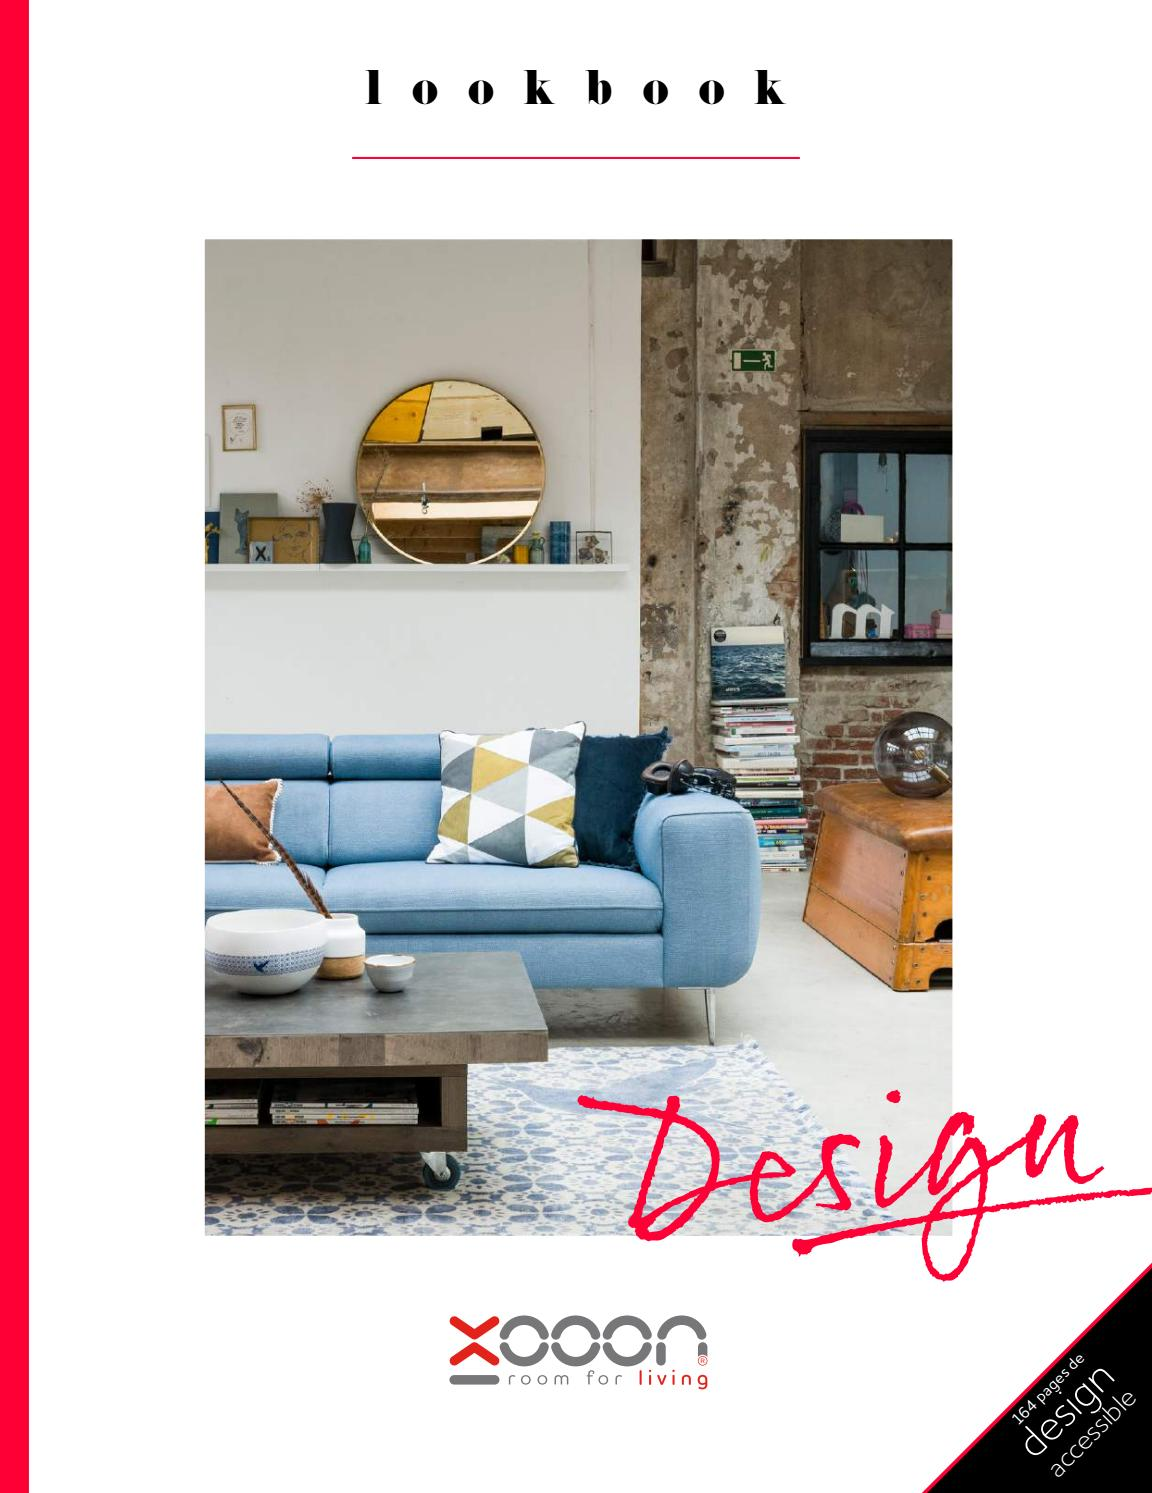 Xooon Fauteuils Xooon Look Book 2017 By Abitare Living Issuu